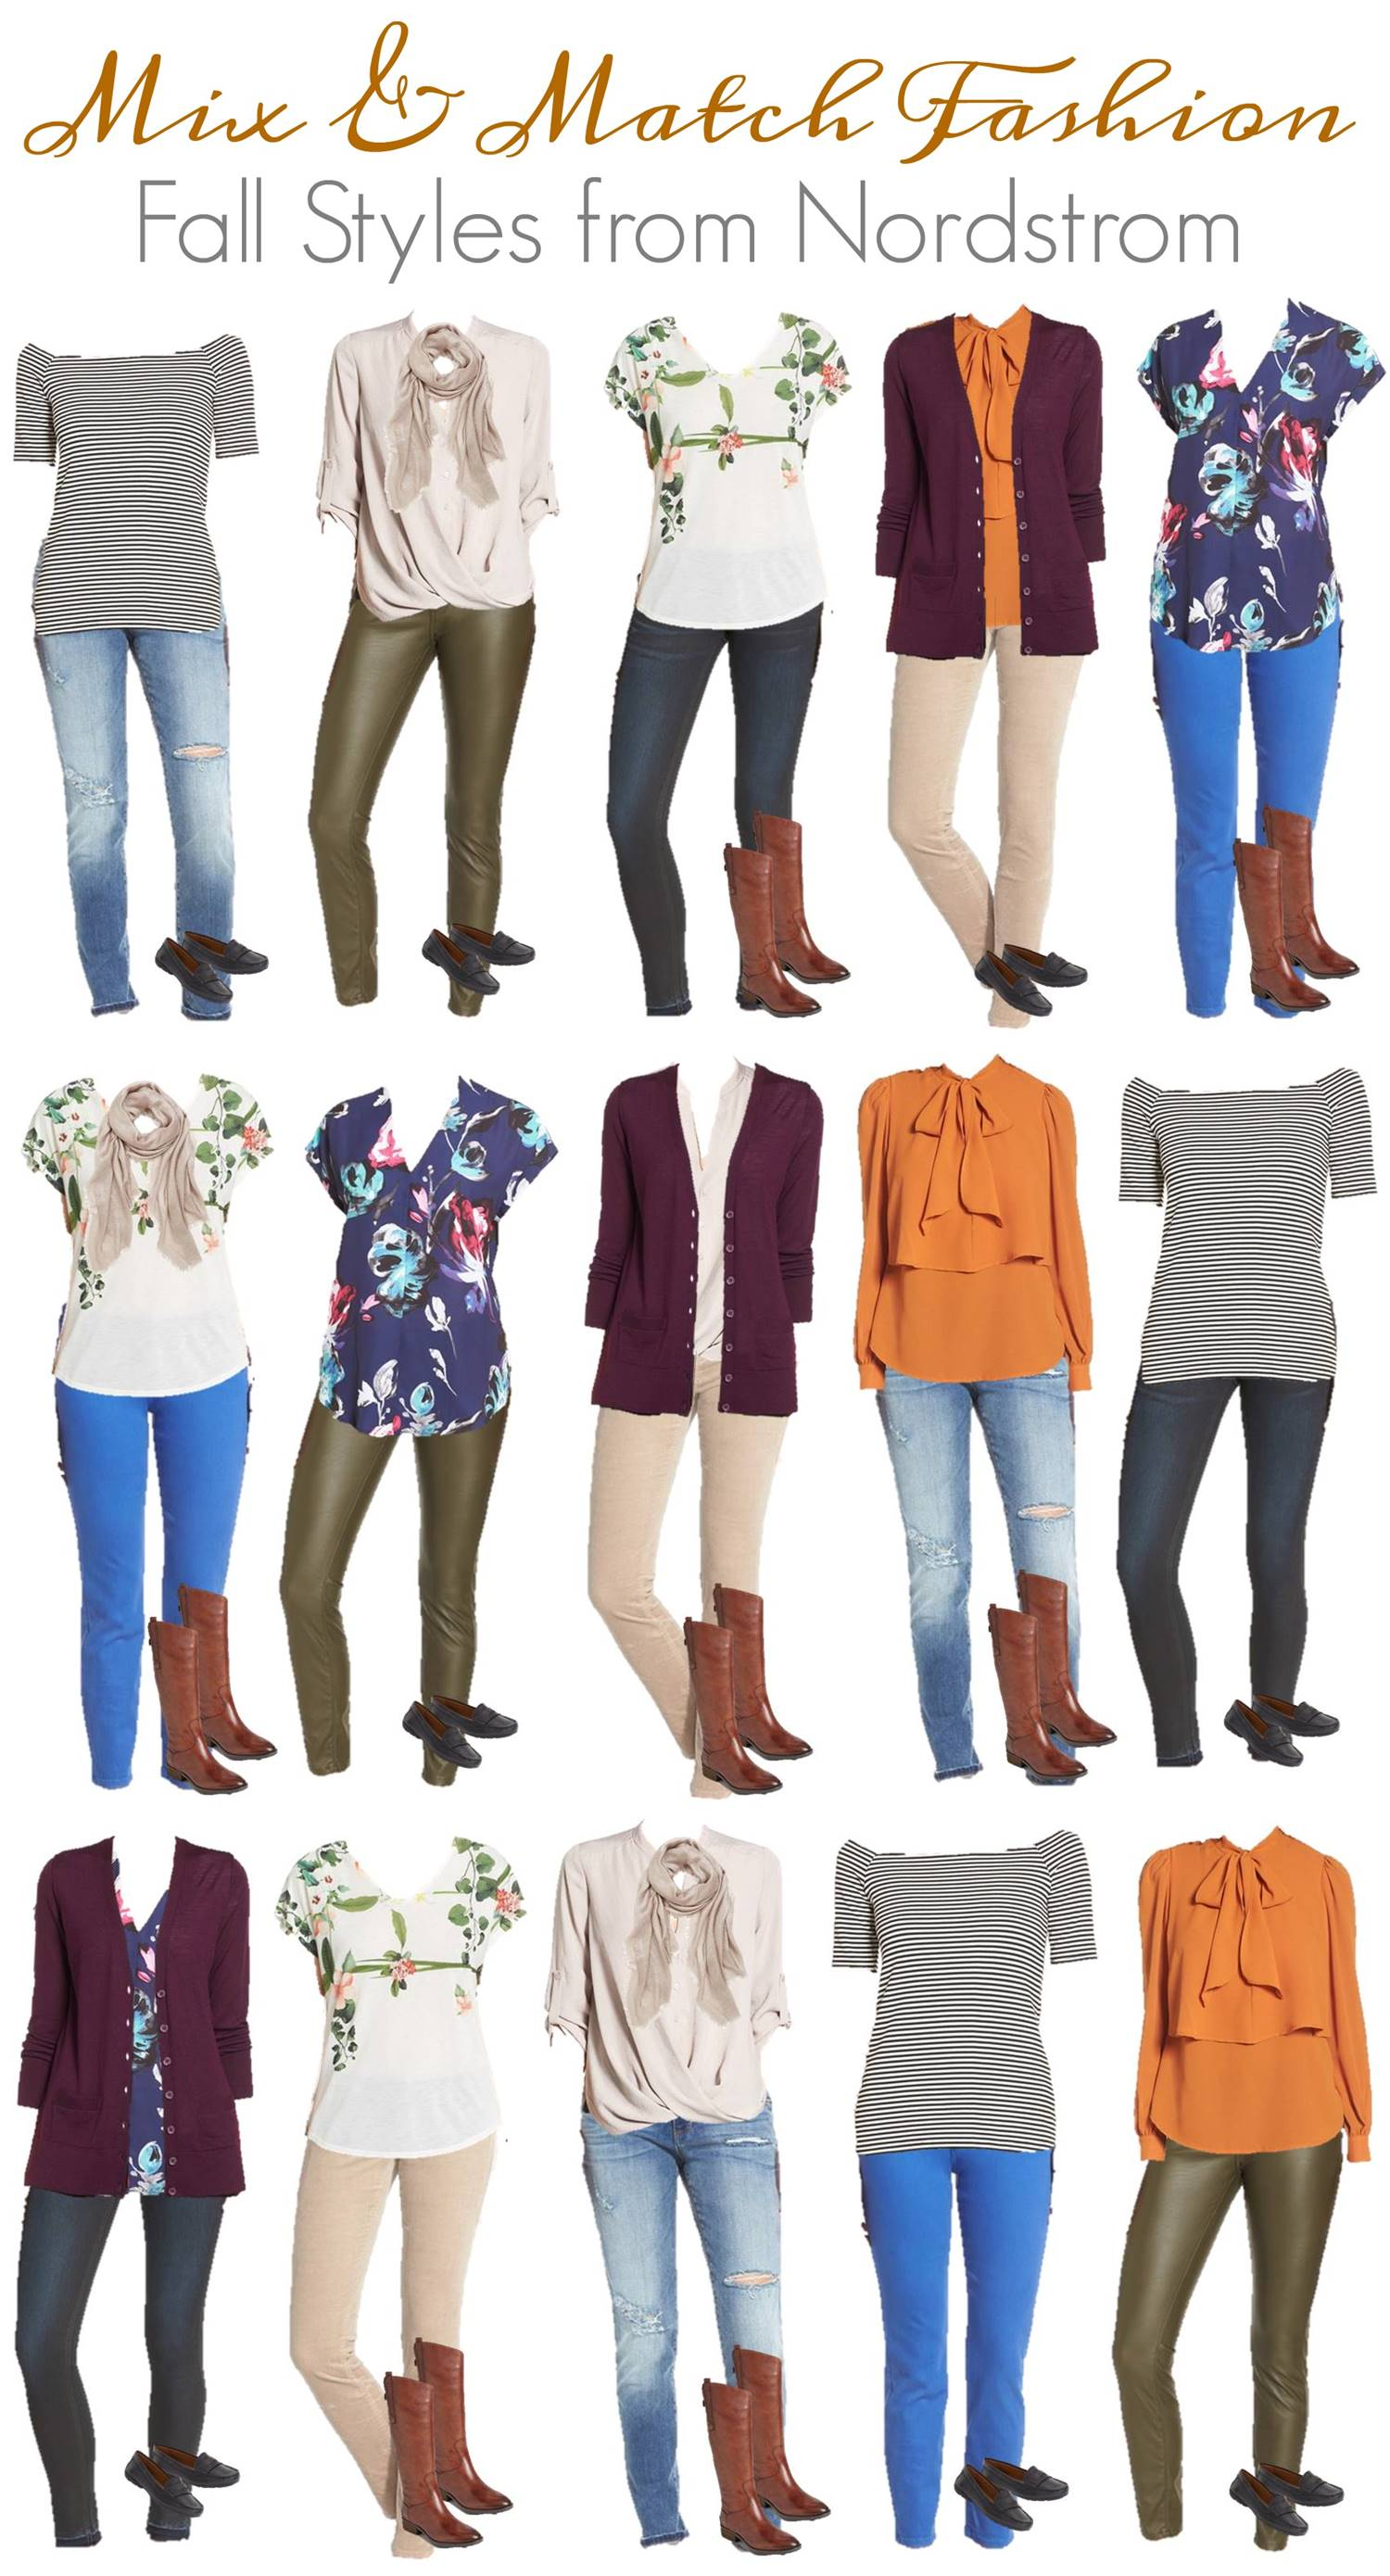 Mix & Match Fall Fashion - Nordstrom High End Styles VERTICAL